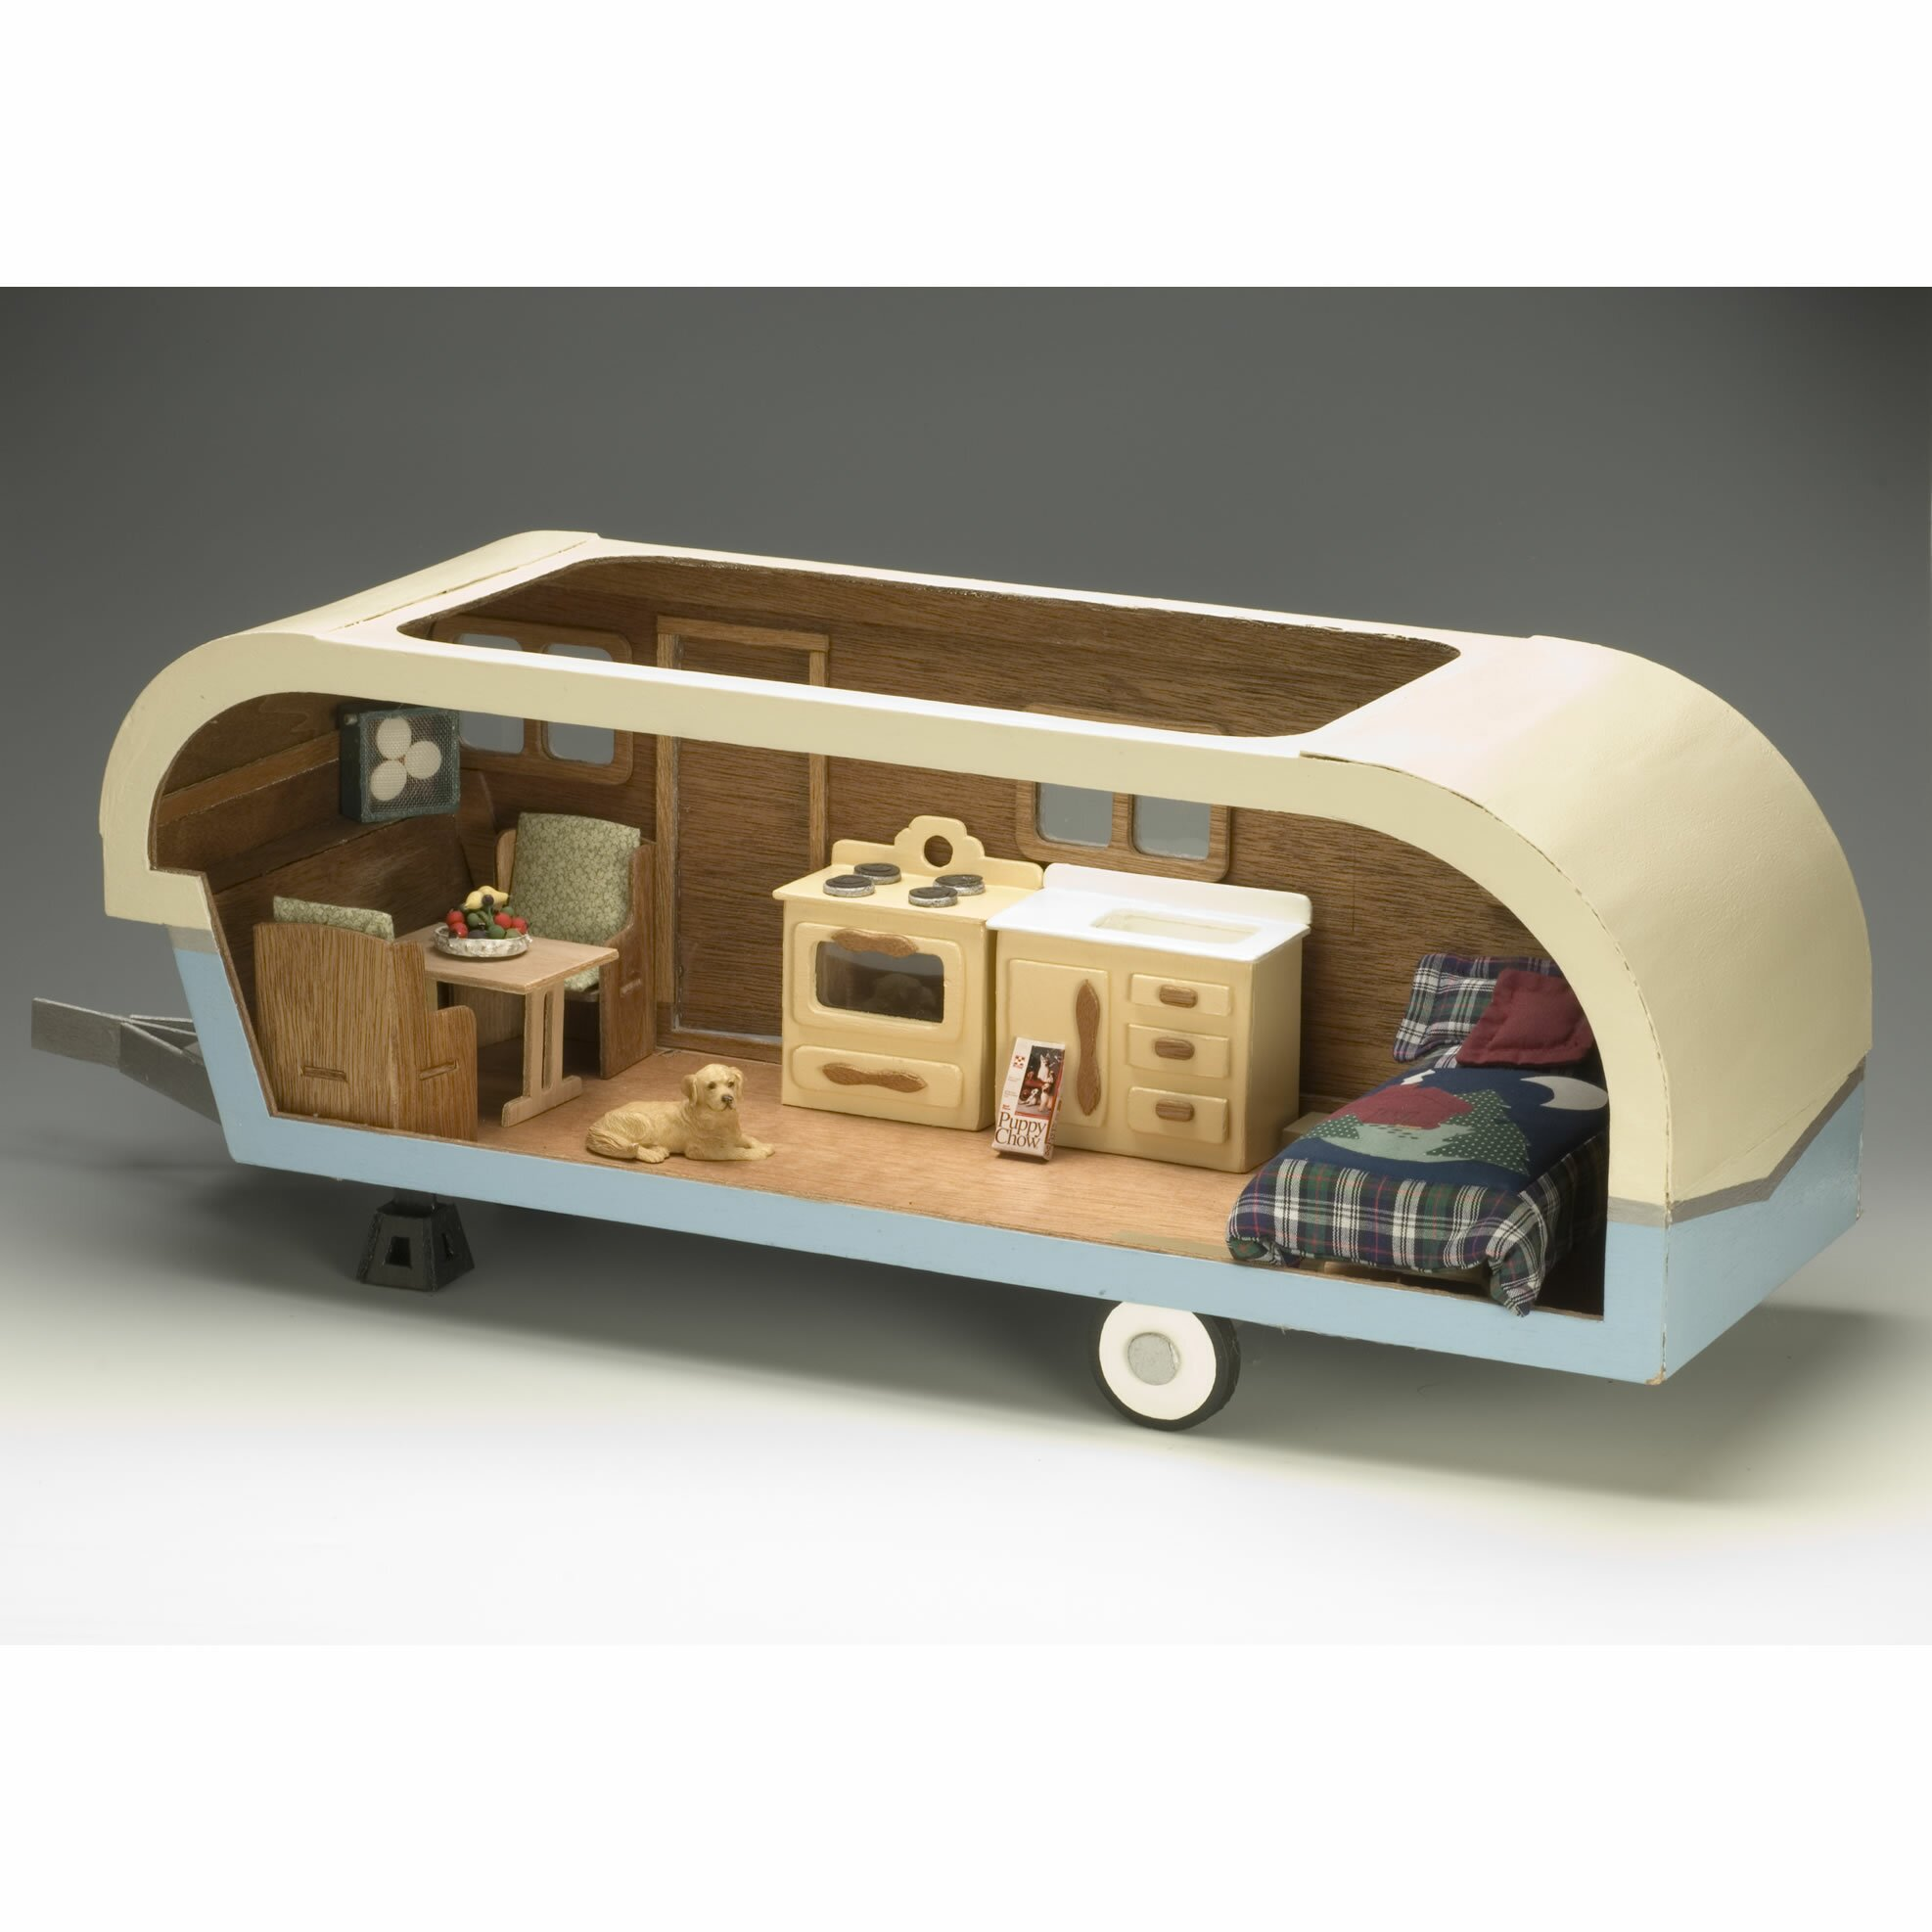 Greenleaf Dollhouses Vintage Travel Trailer Dollhouse